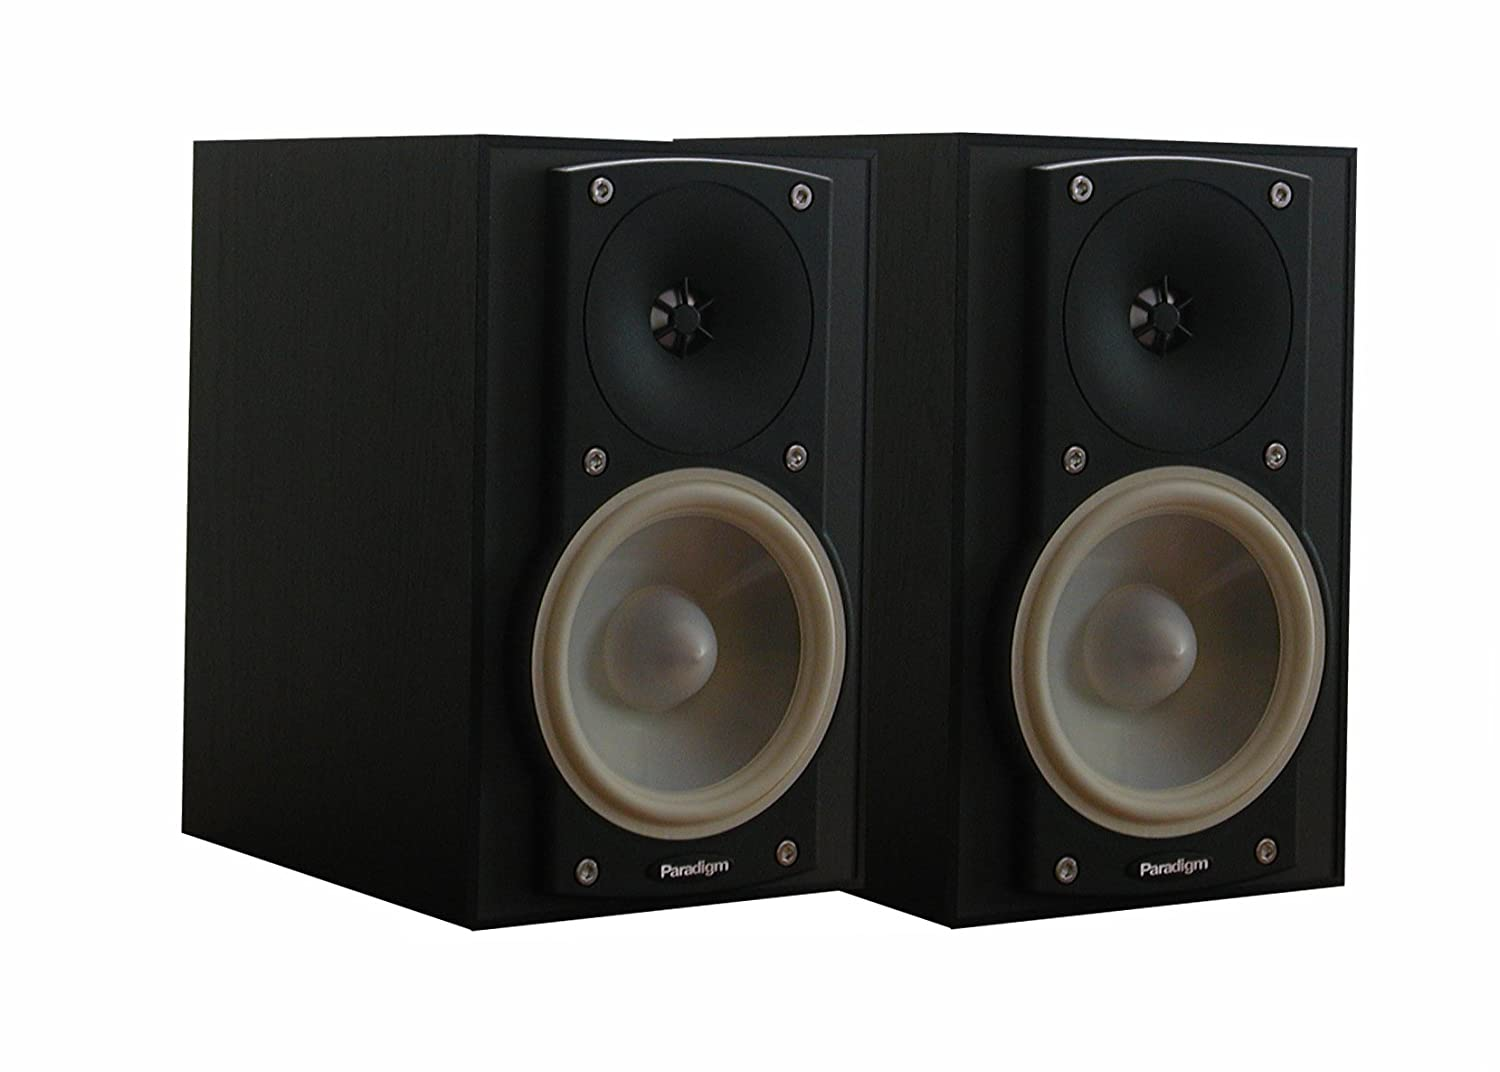 Paradigm Atom Monitor Bookshelf Speakers Black Ash Electronics Jpg 1500x1072 Review